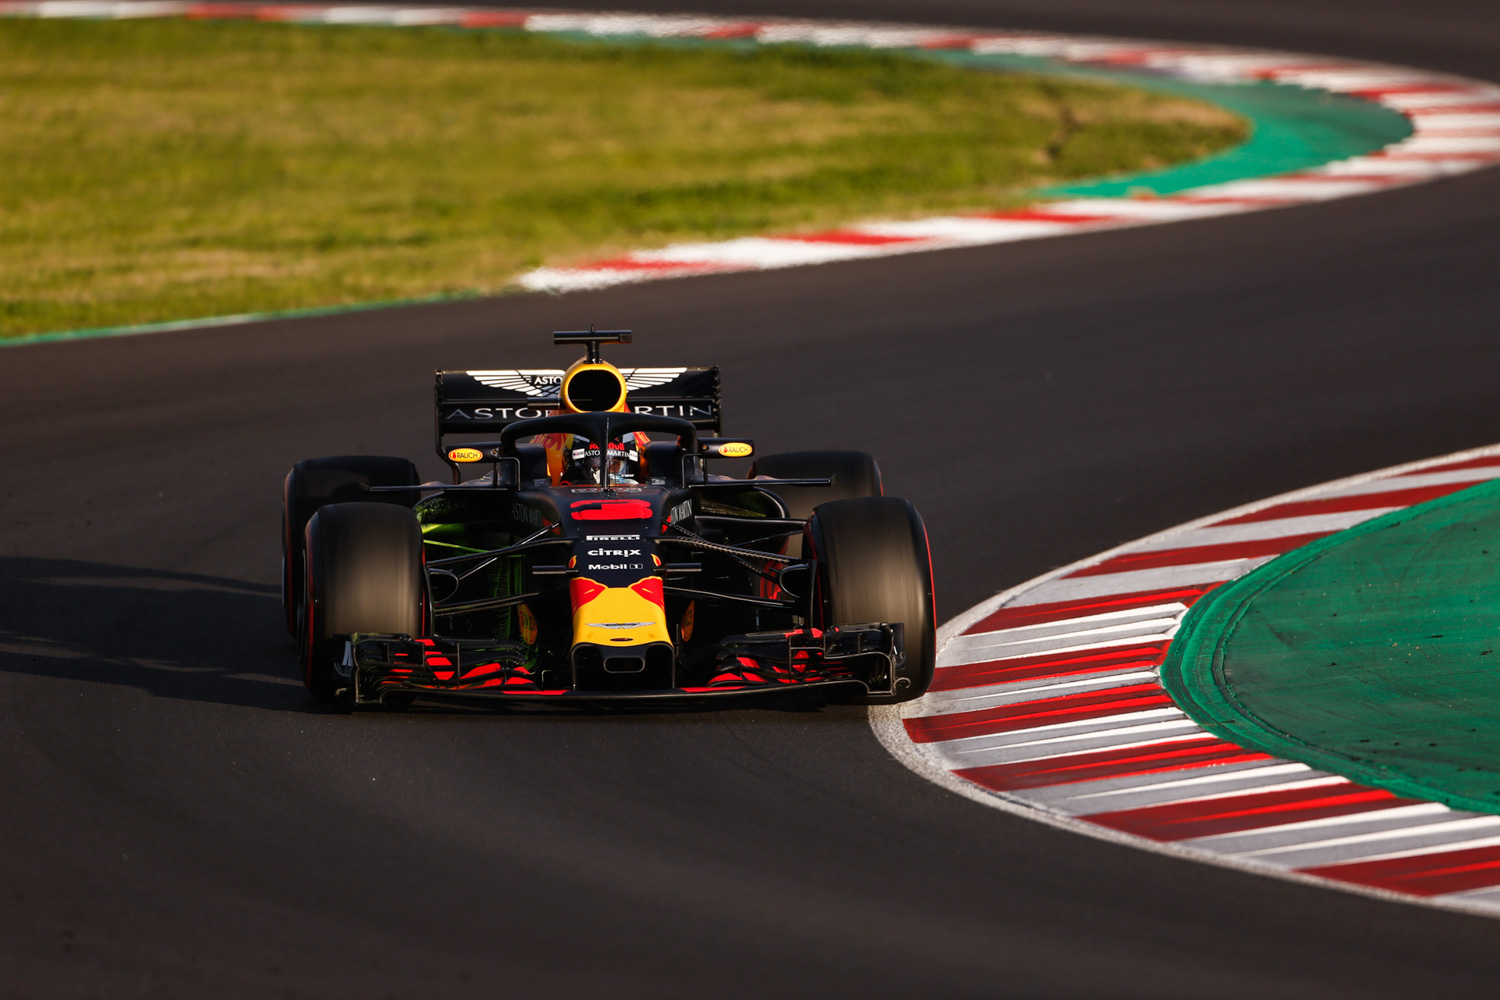 Daniel RICCIARDO - Australia - ASTON MARTIN RED BULL RACING - #03 - F1 Test Days - Circuit de Barcelona Catalunya - Spain - 09 March 2018